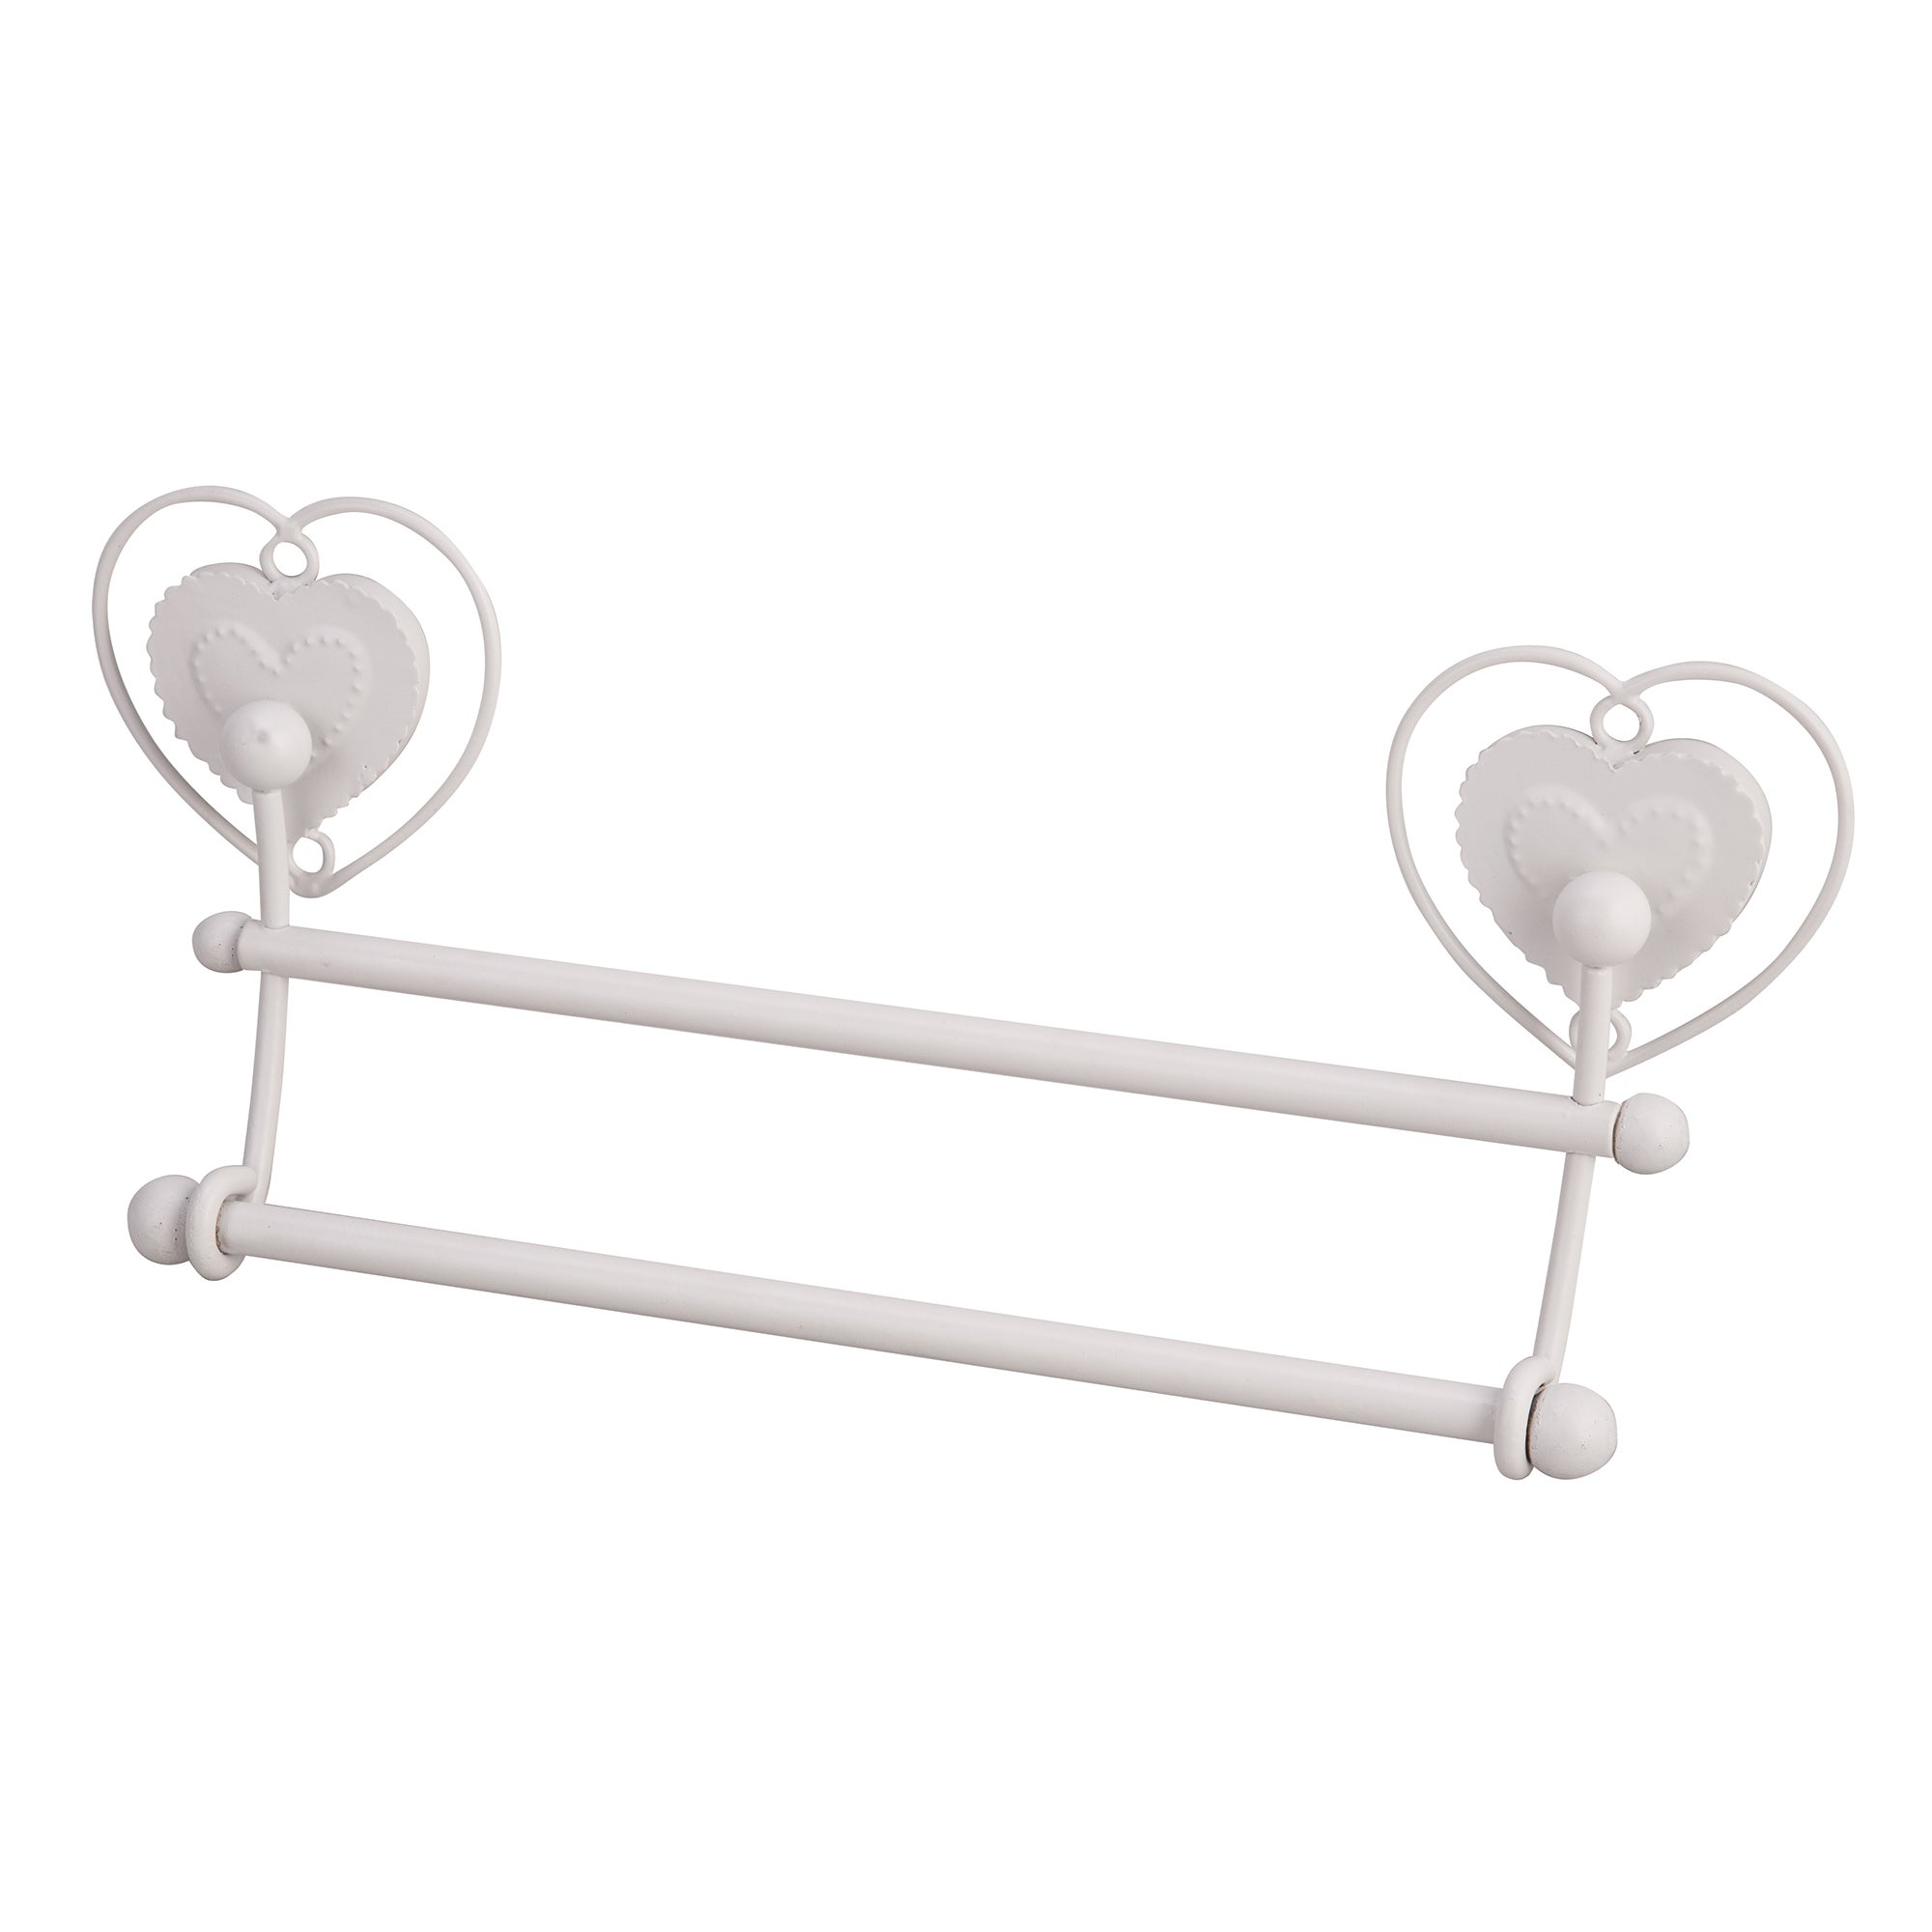 Vintage Heart Collection Double Towel Rail